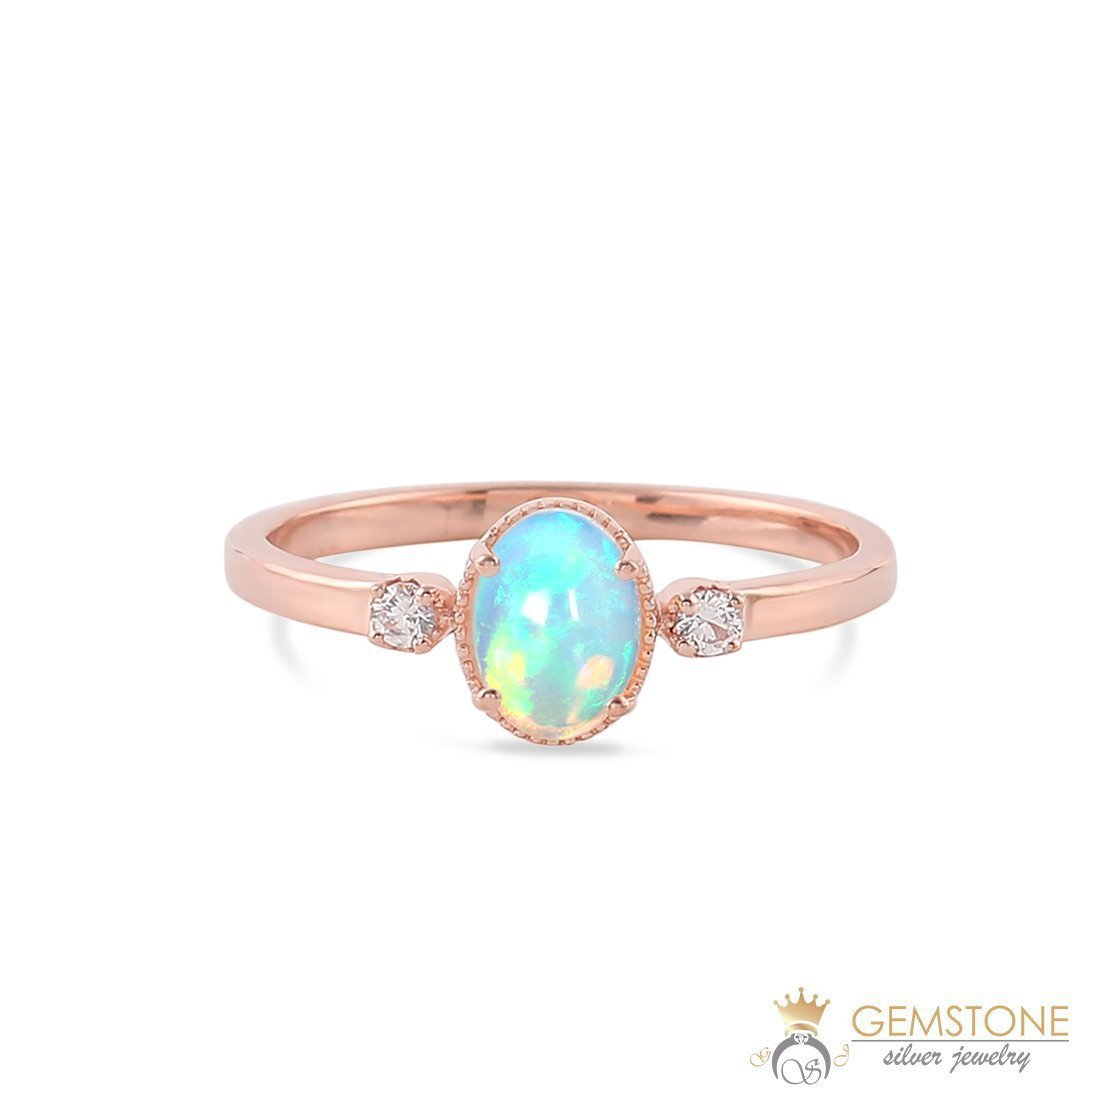 jewels silver opal engagement ring silver opal ring opal ring yellow gold opal ring 14k gold opal jewelry sets opal jewelry opal rings size 11 opal rings size 5 opal rings price opal rings yellow gold opal rings in yellow gold opal rings simple opal rings cheap opal nose rings opal rings on sale opal rings for sale opal rings antique opal rings from australia opal rings in sterling silver opal rings real opal rings gold opal engagement rings rose gold opal rings rose gold opal rings with rose gold opal rings in rose gold opal rings wedding opal rings